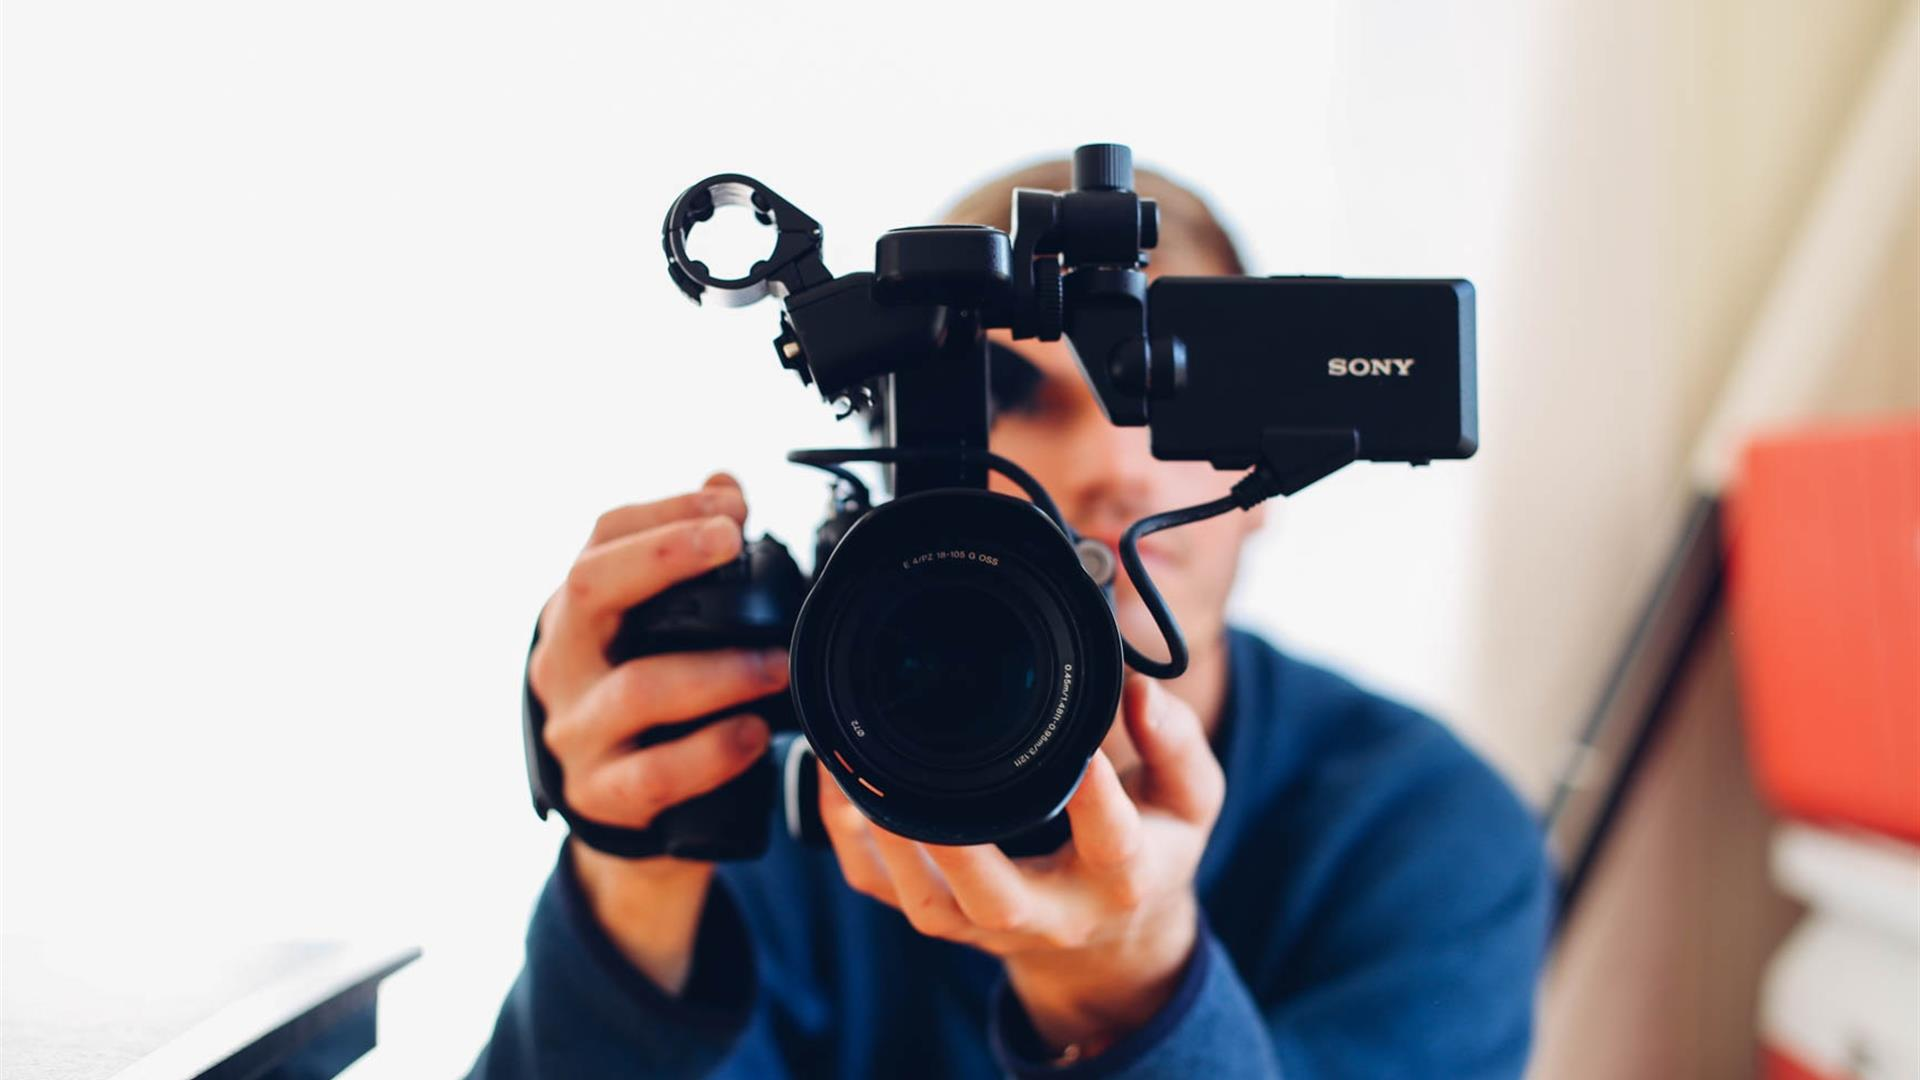 Camera Seth Doyle Unsplash